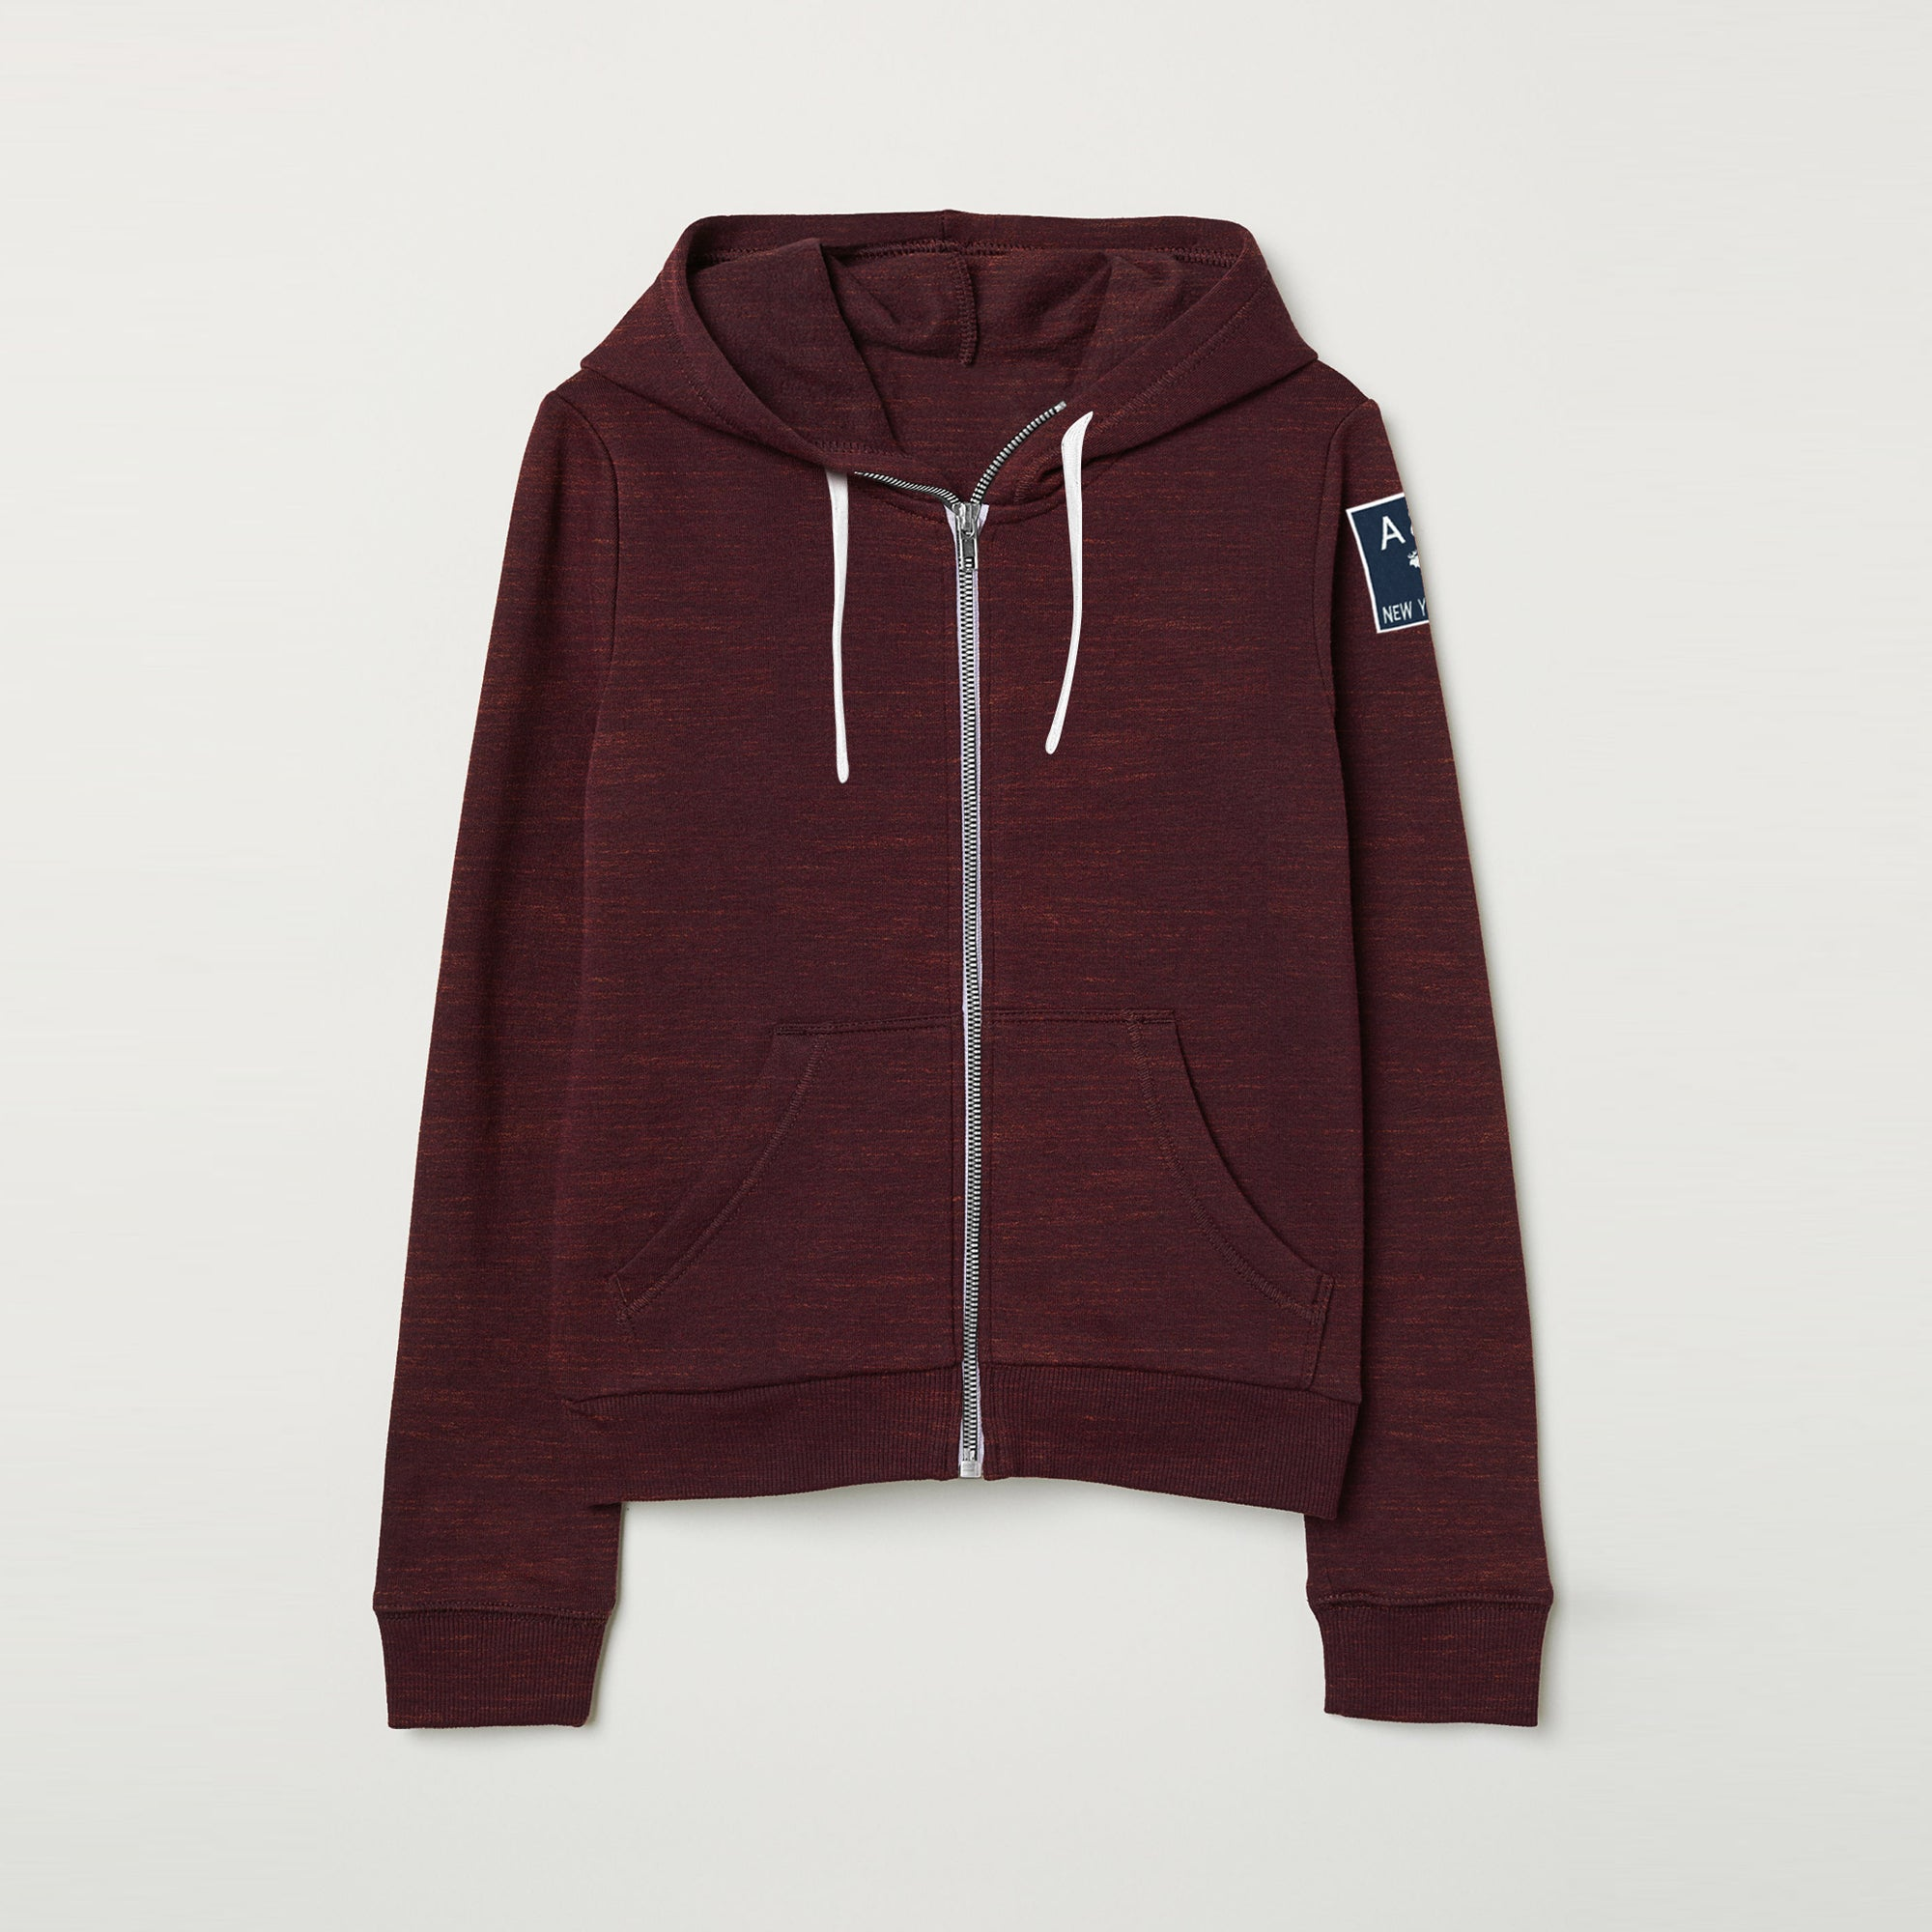 A&F Terry Fleece Zipper Hoodie For Ladies-Maroon Melange-BE7913